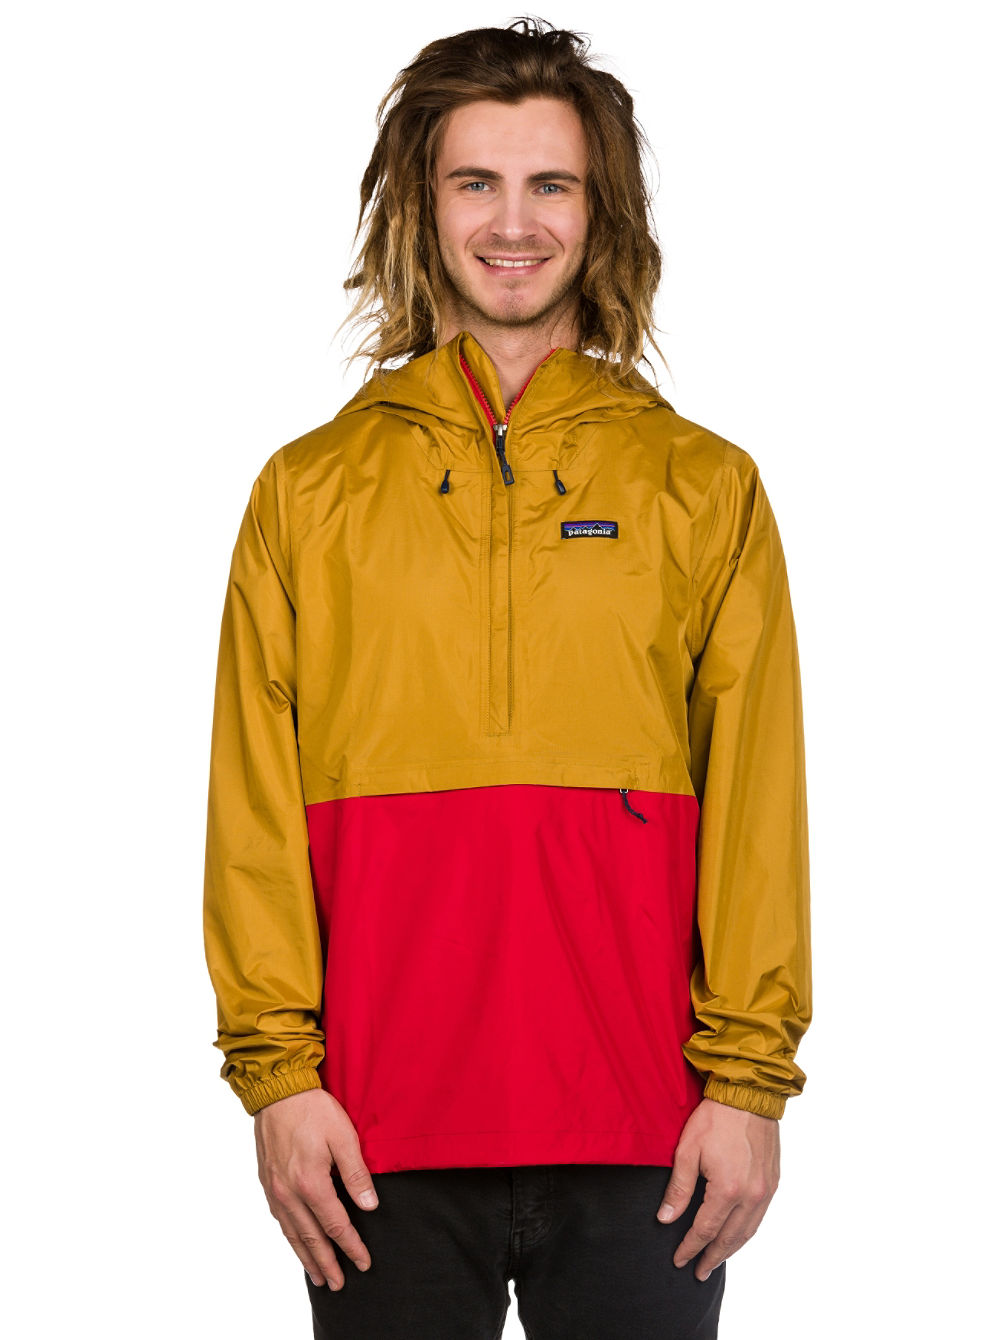 Buy Patagonia Torrentshell Pullover Jacket online at blue-tomato.com